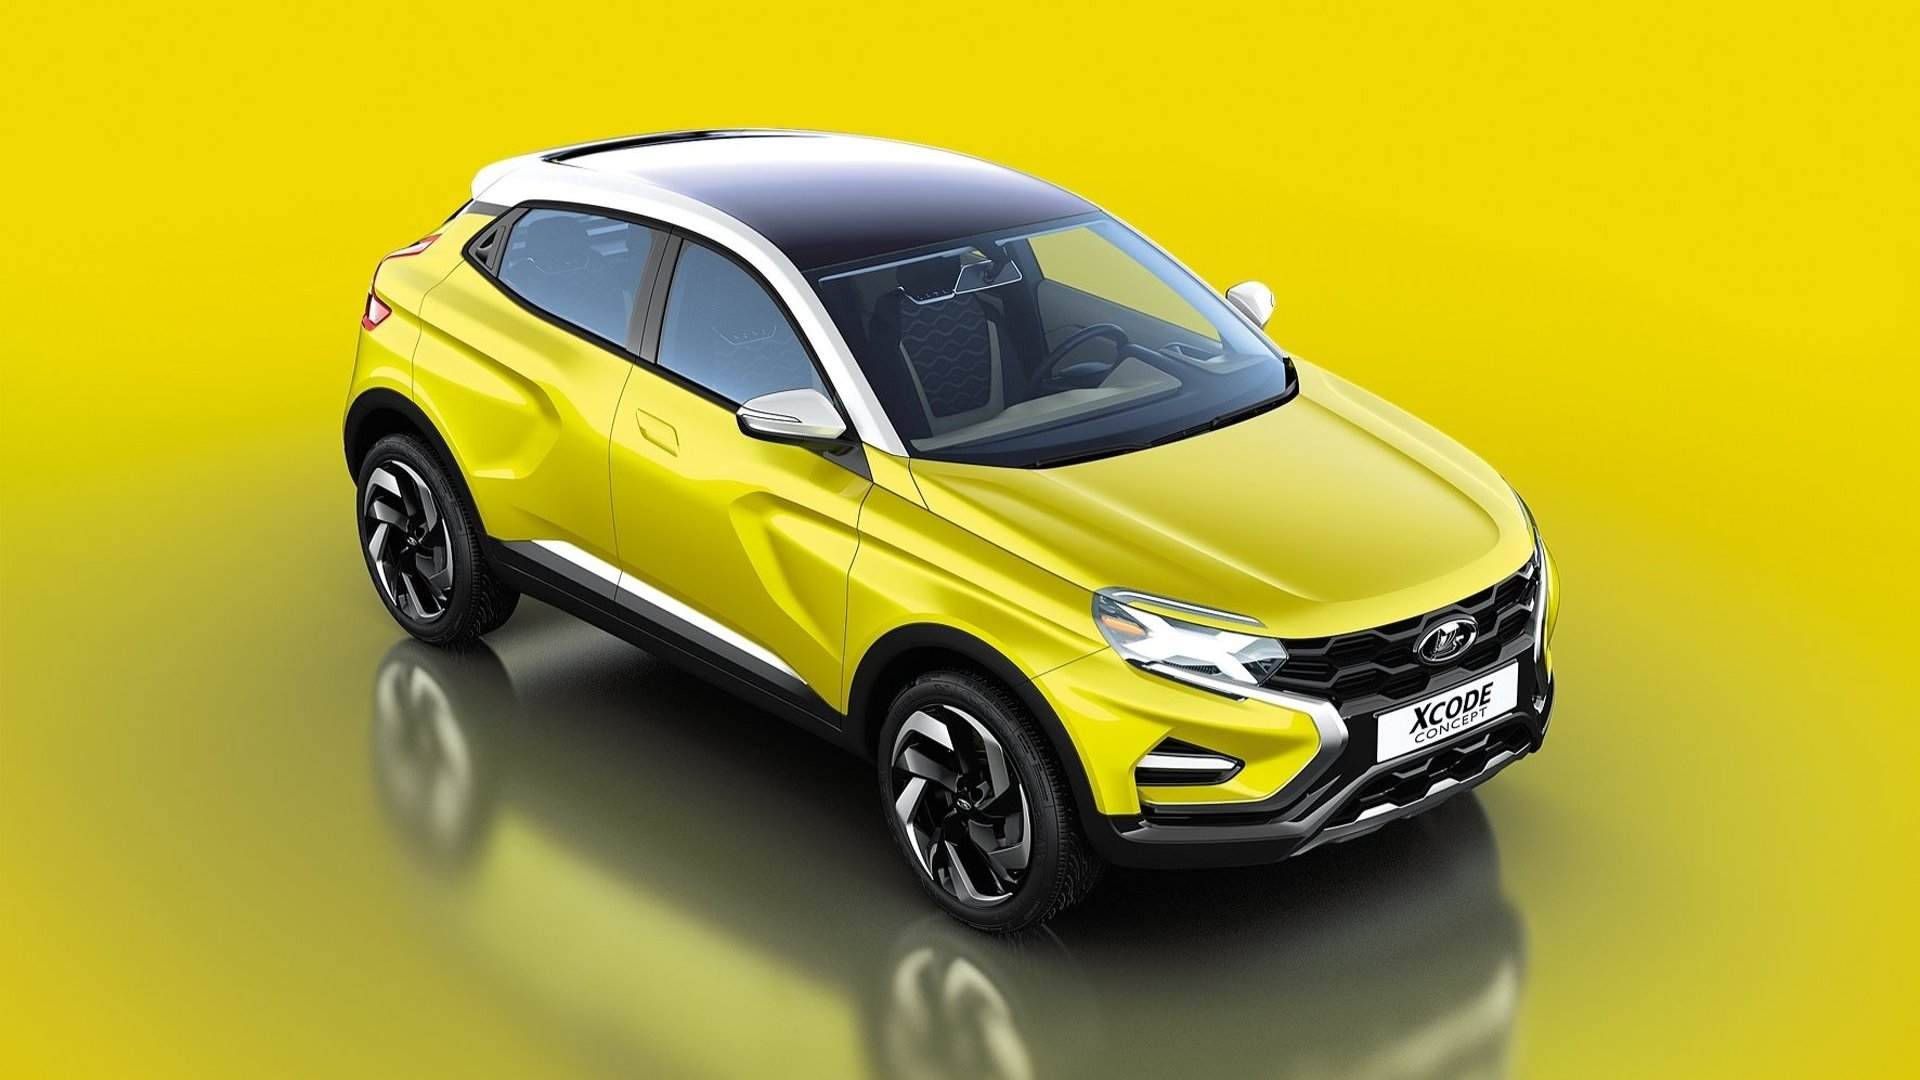 S0-lada-xcode-concept-crossover-compact-